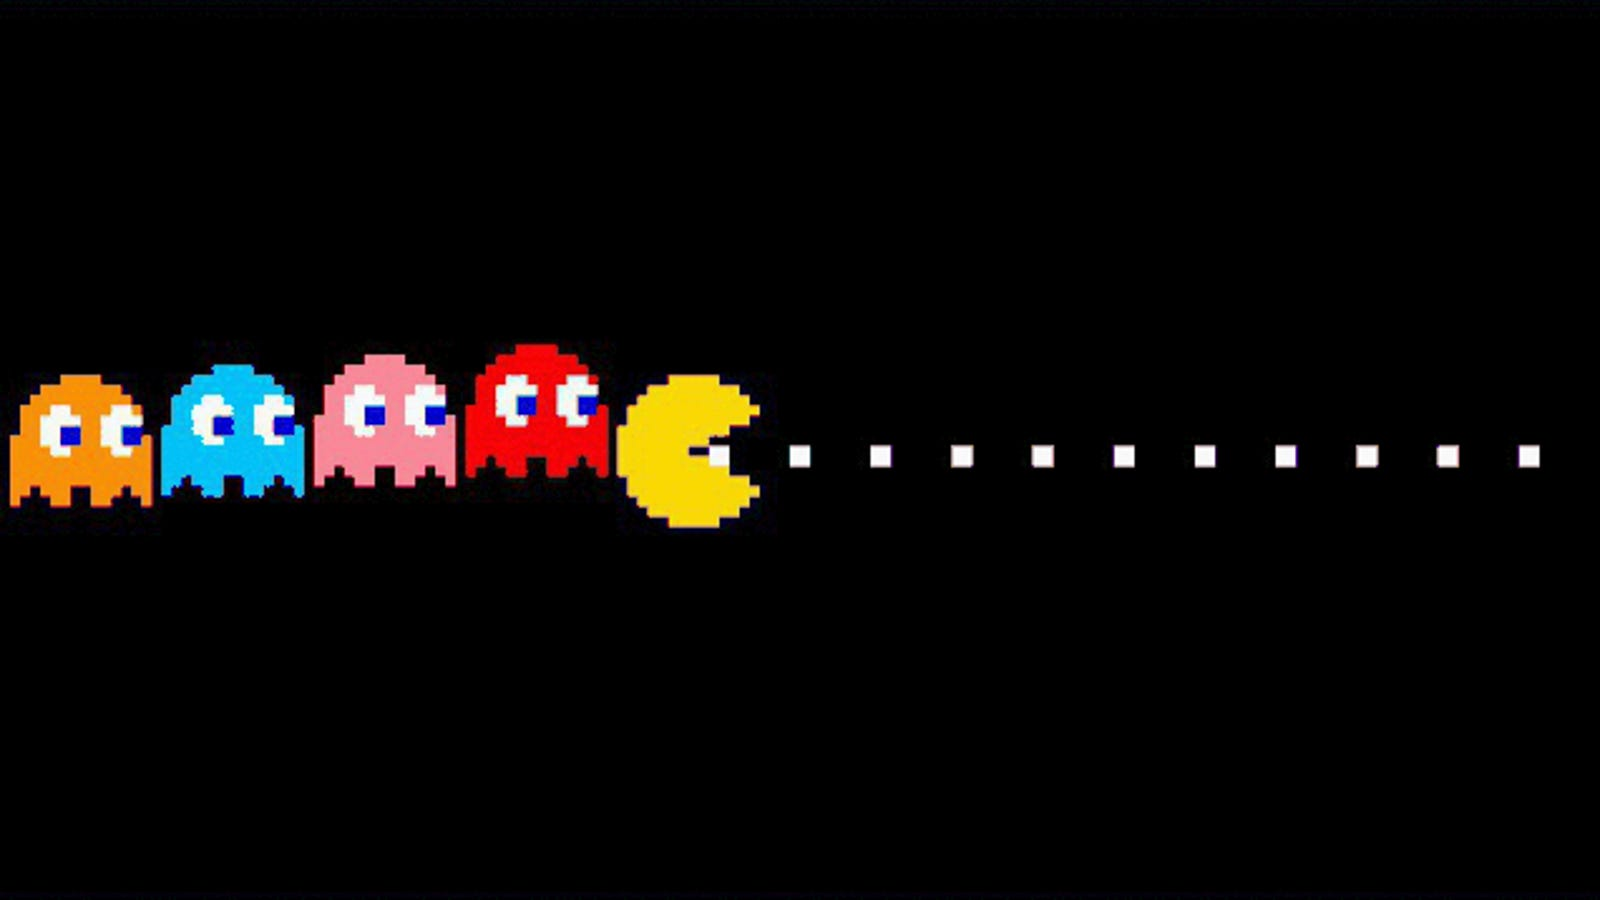 This is a graphic of Magic Pictures of Pacman Ghosts